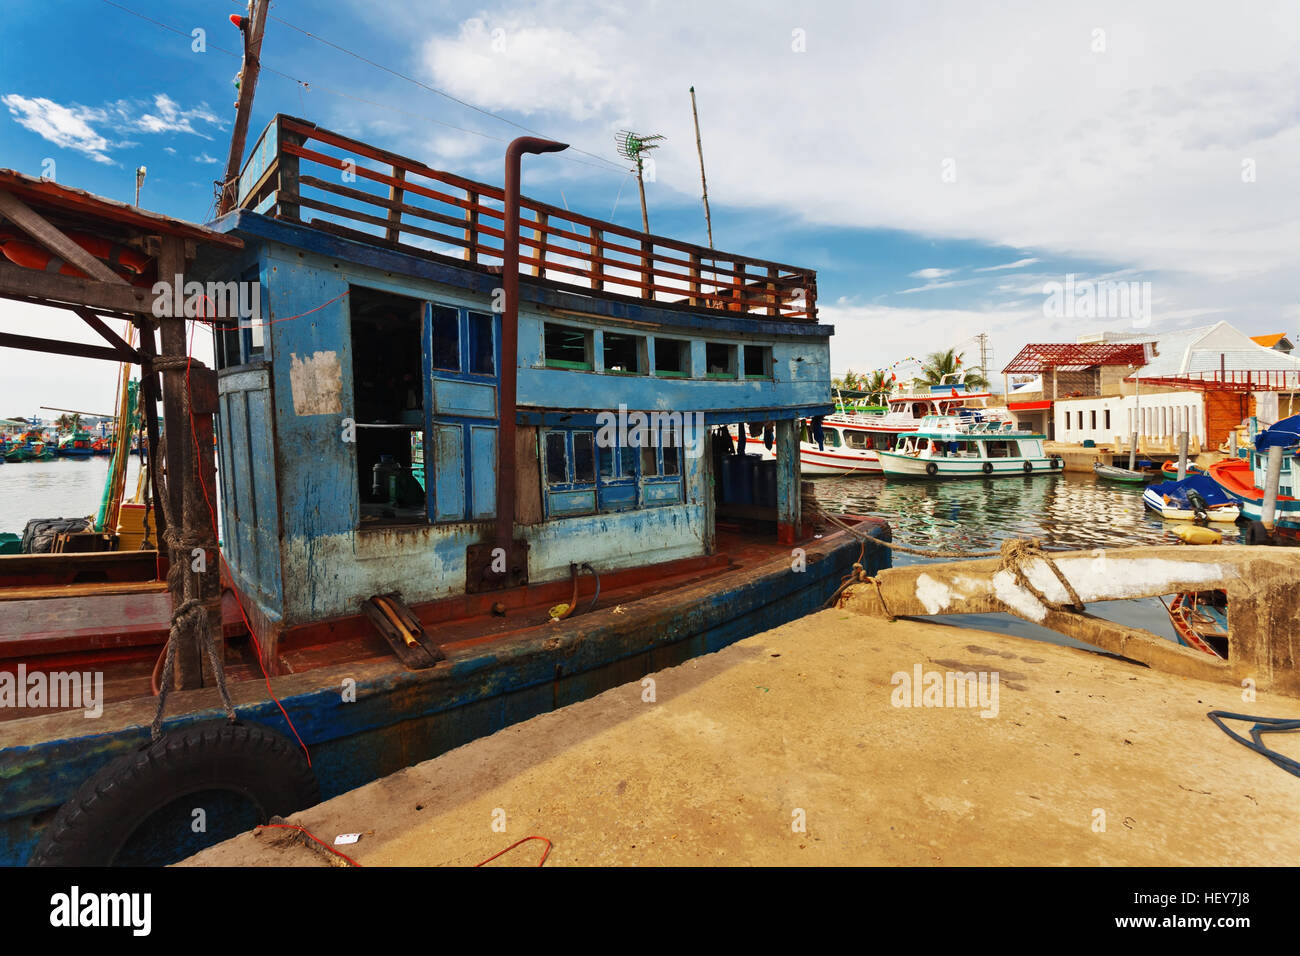 Fishing boats in port at Phu Quoc island. Vietnam - Stock Image